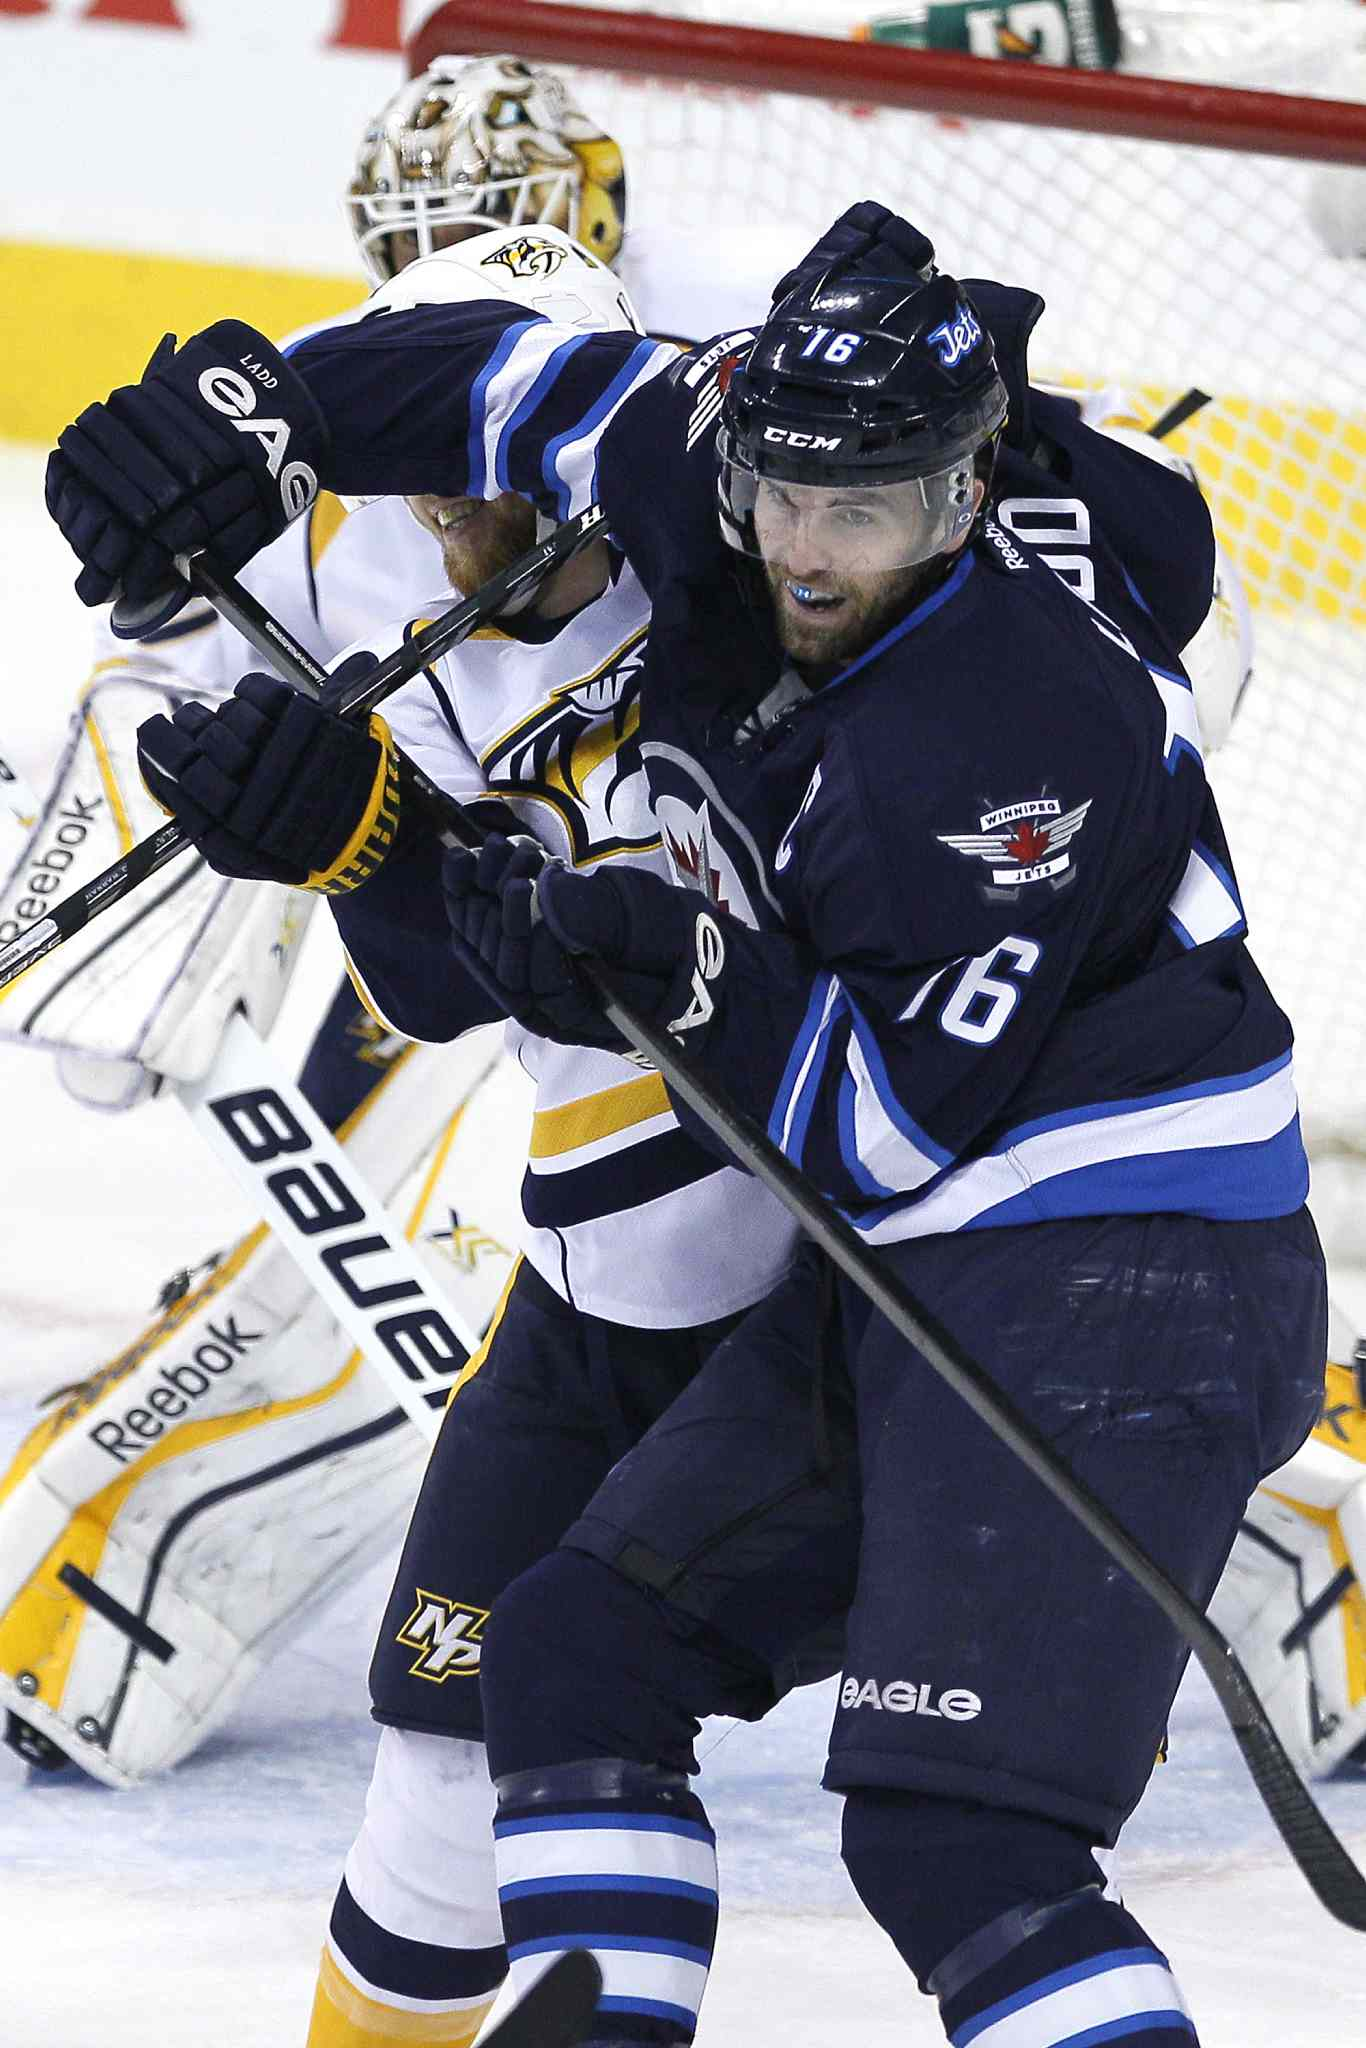 Winnipeg Jets' Andrew Ladd (16) mixes it up with Nashville Predators' Ryan Ellis (4) in front of goaltender Carter Hutton (30) during the first period.